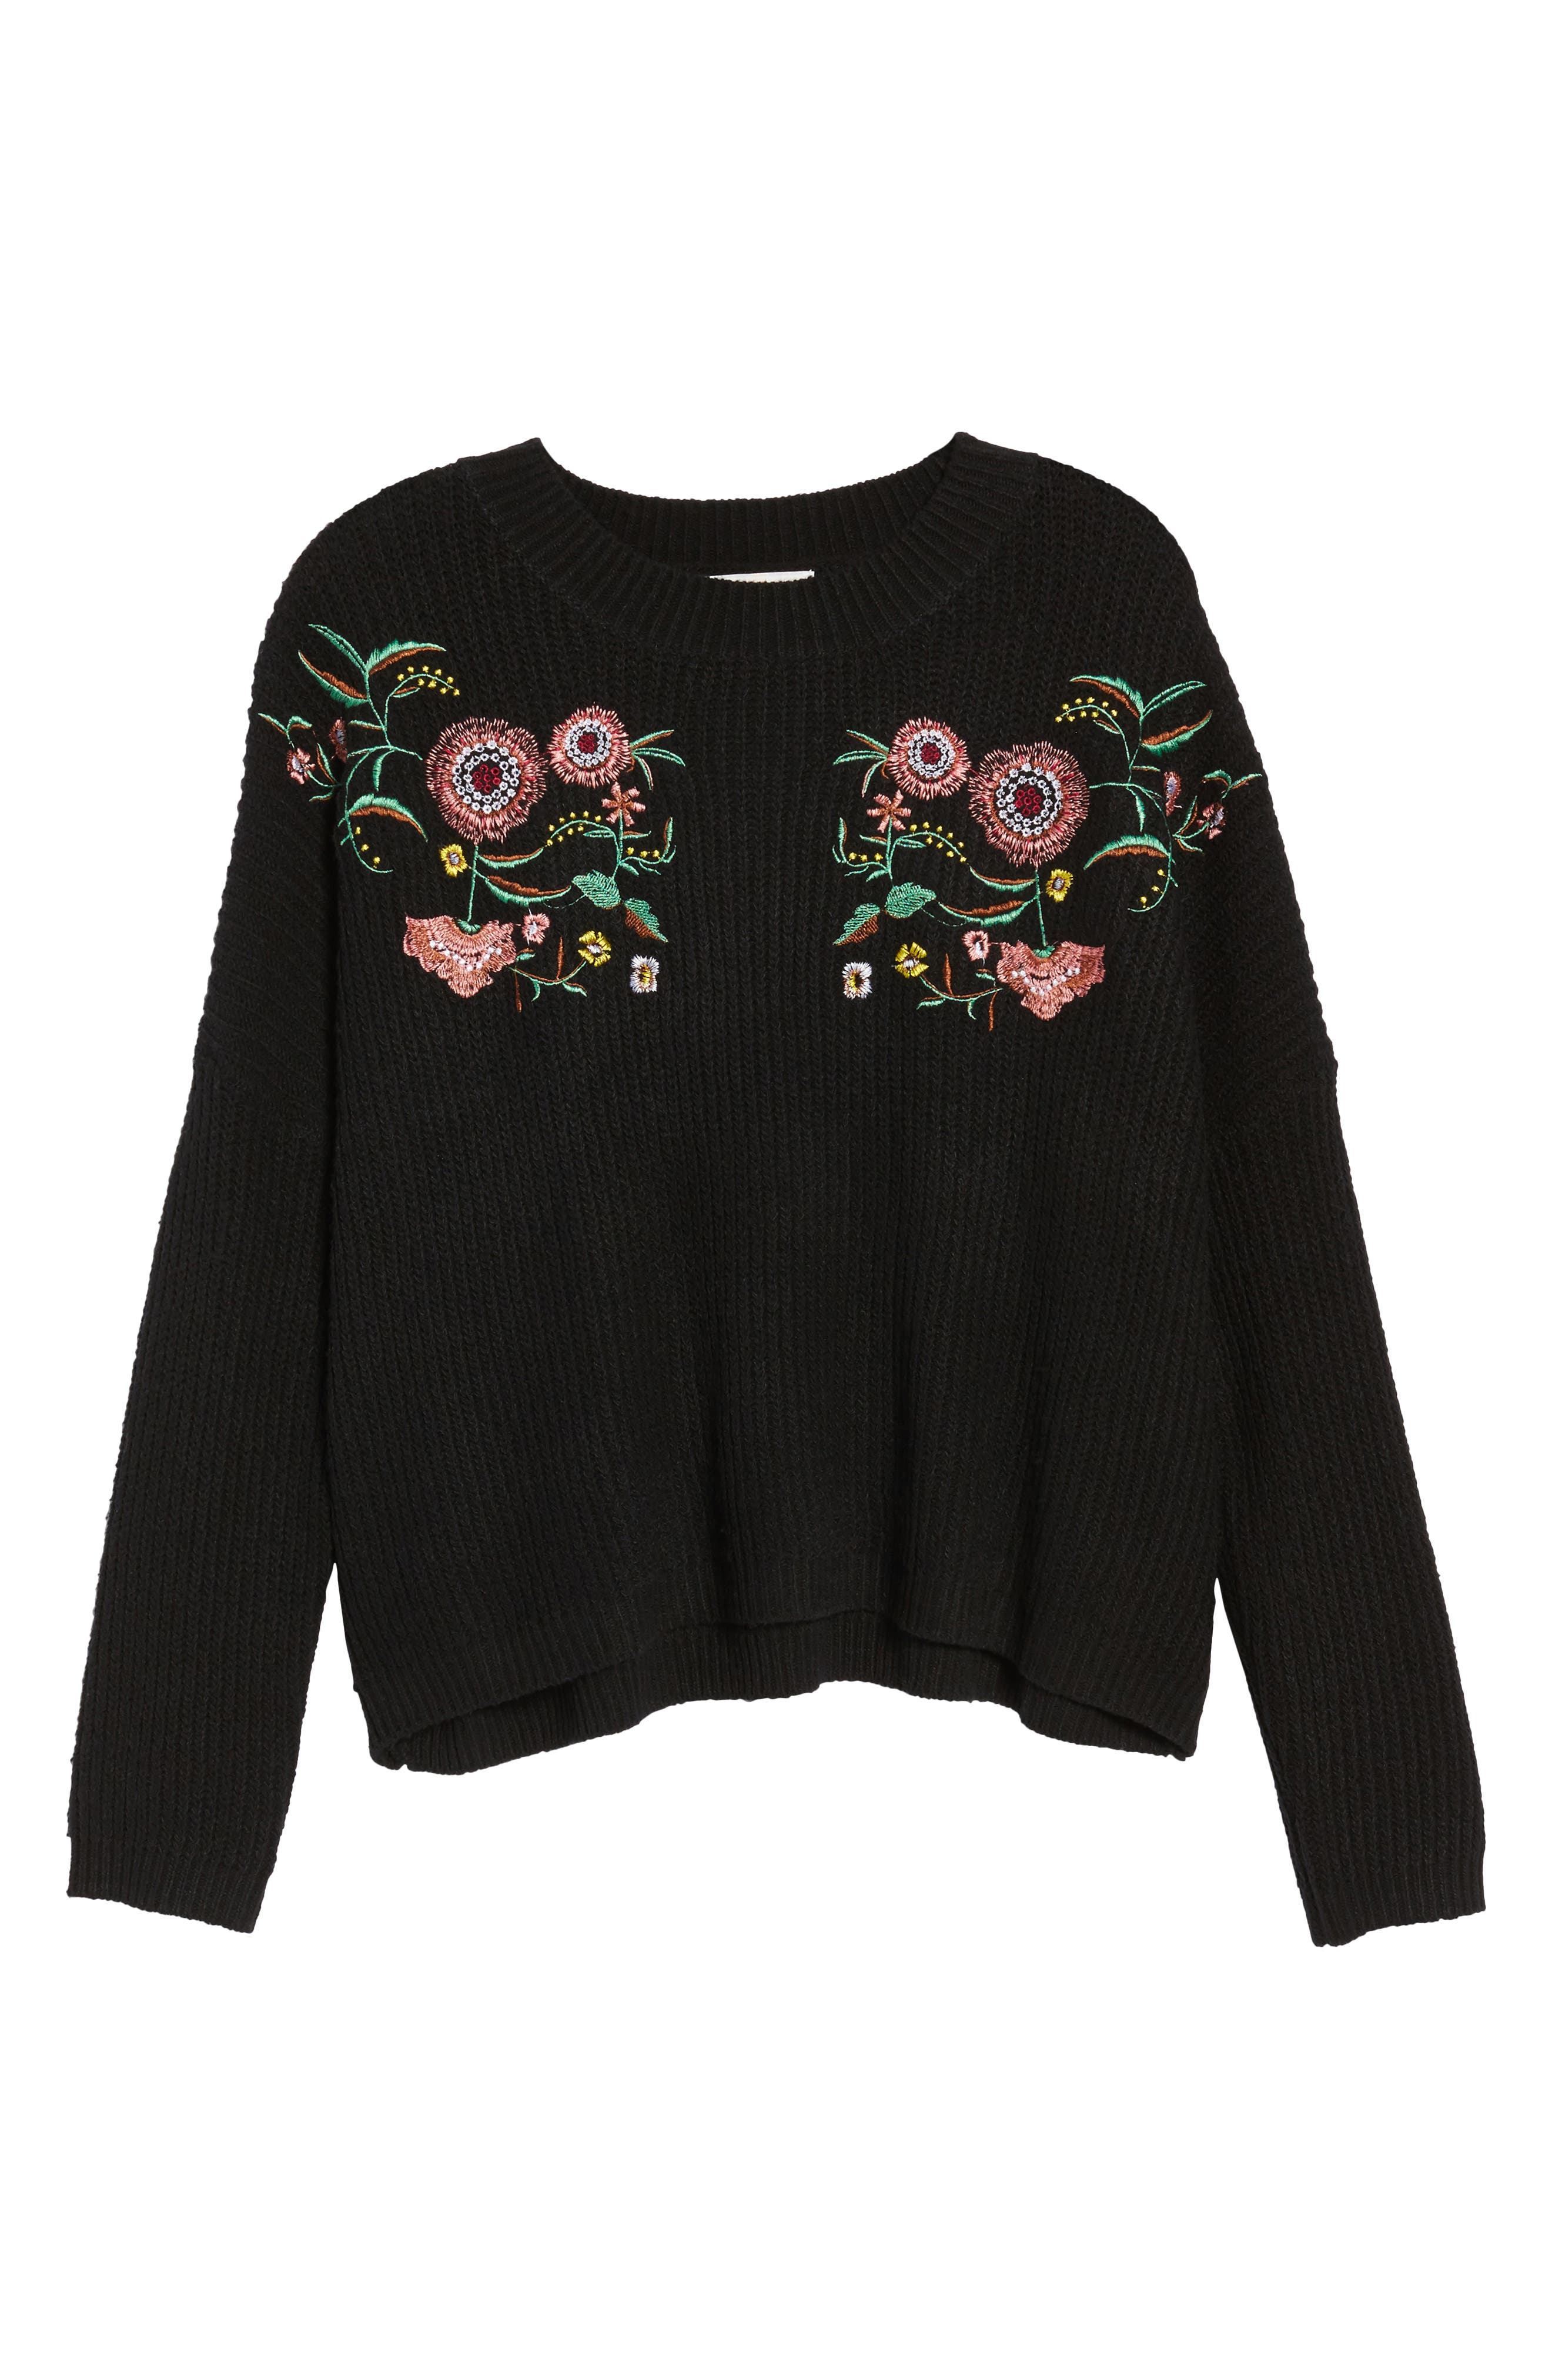 Embroidered Floral Sweater,                             Alternate thumbnail 6, color,                             001